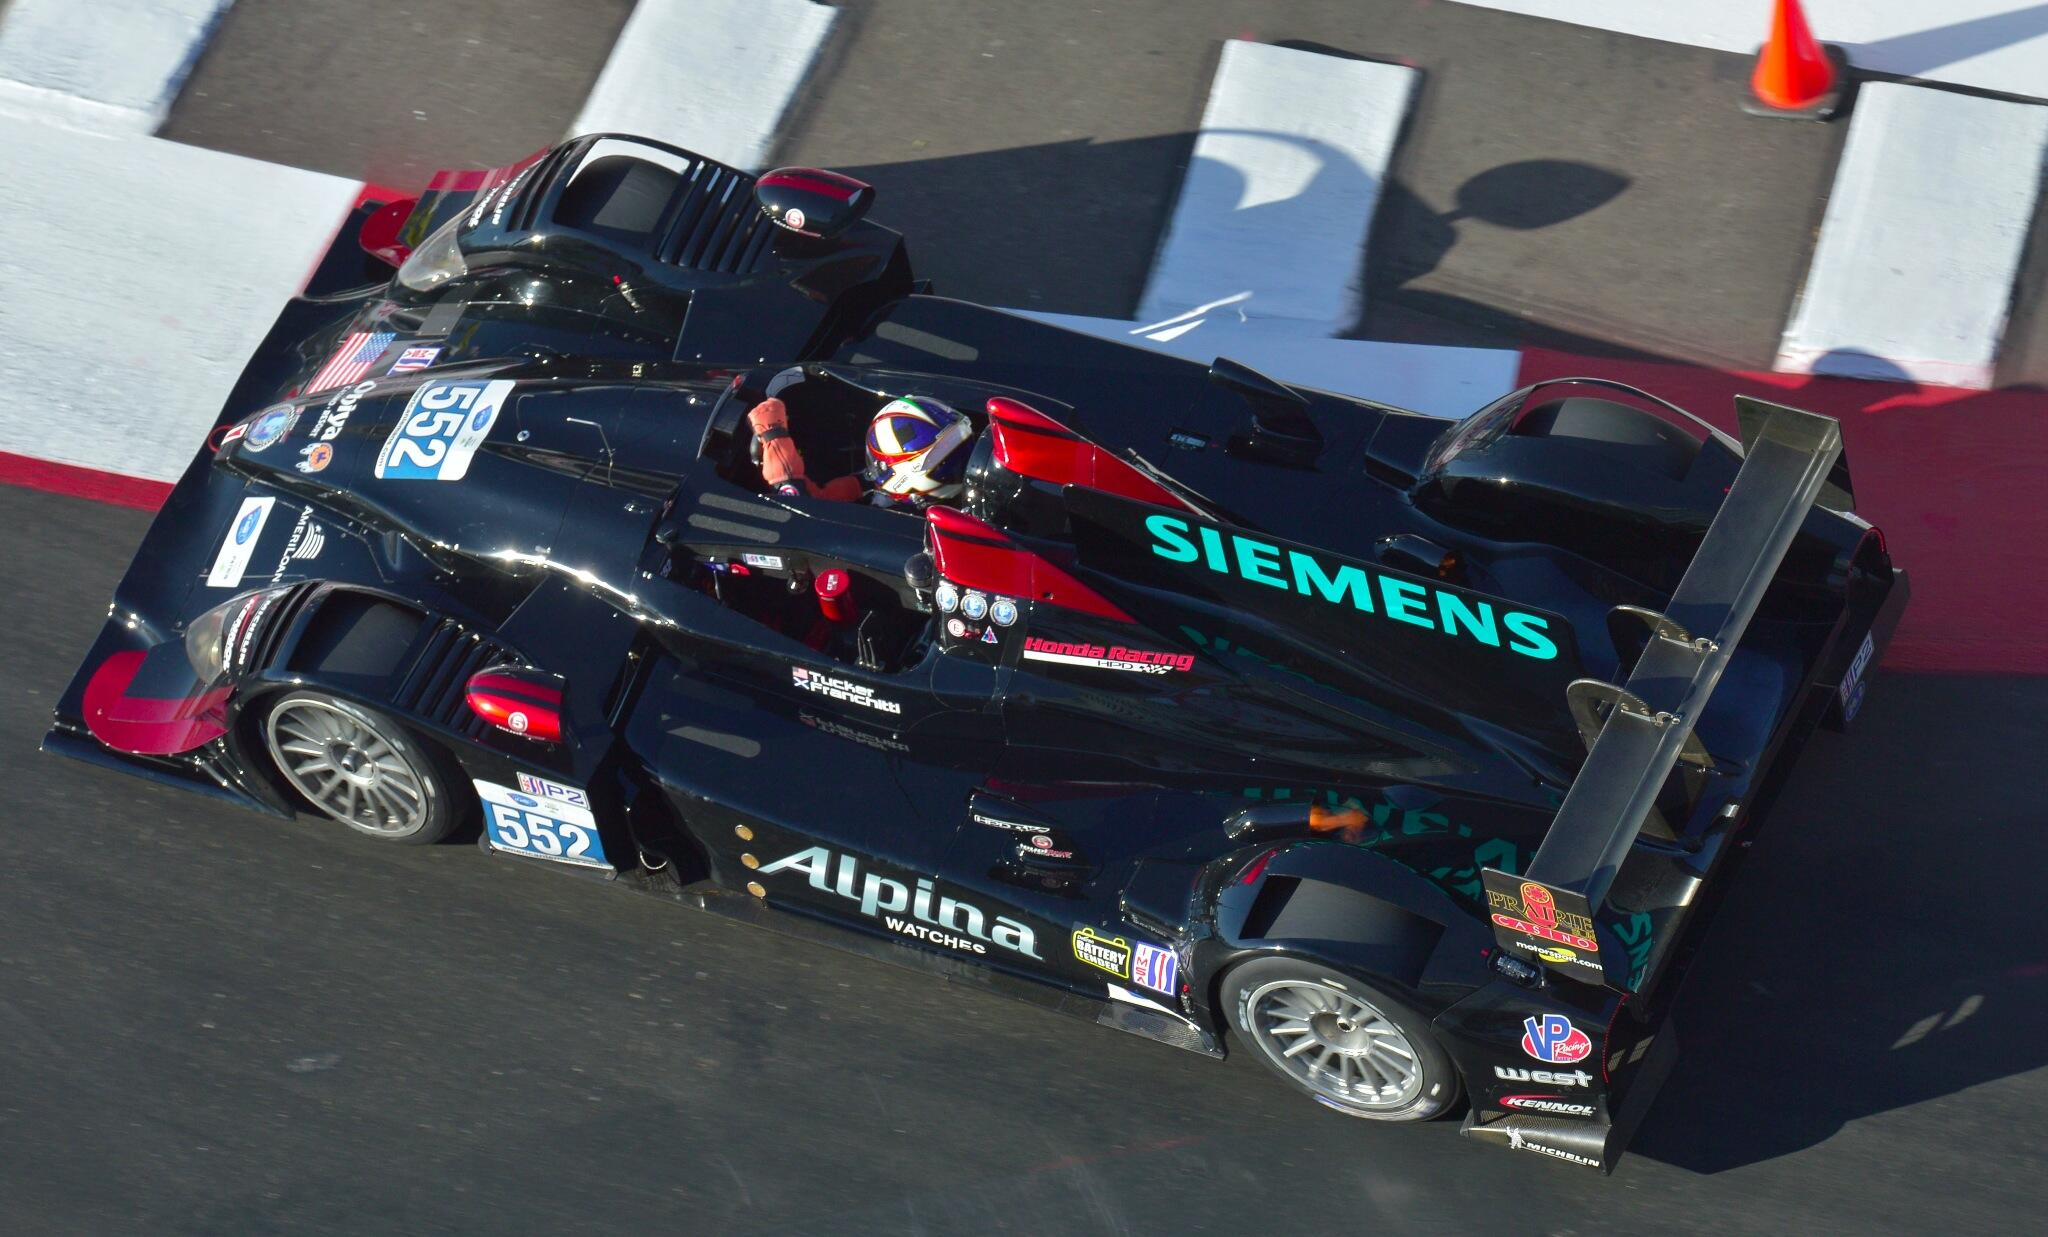 RT @MFranchitti: Night all, race day tomorrow! Love this Dan R. Boyd shot from today... http://t.co/VEWrljW5Ay